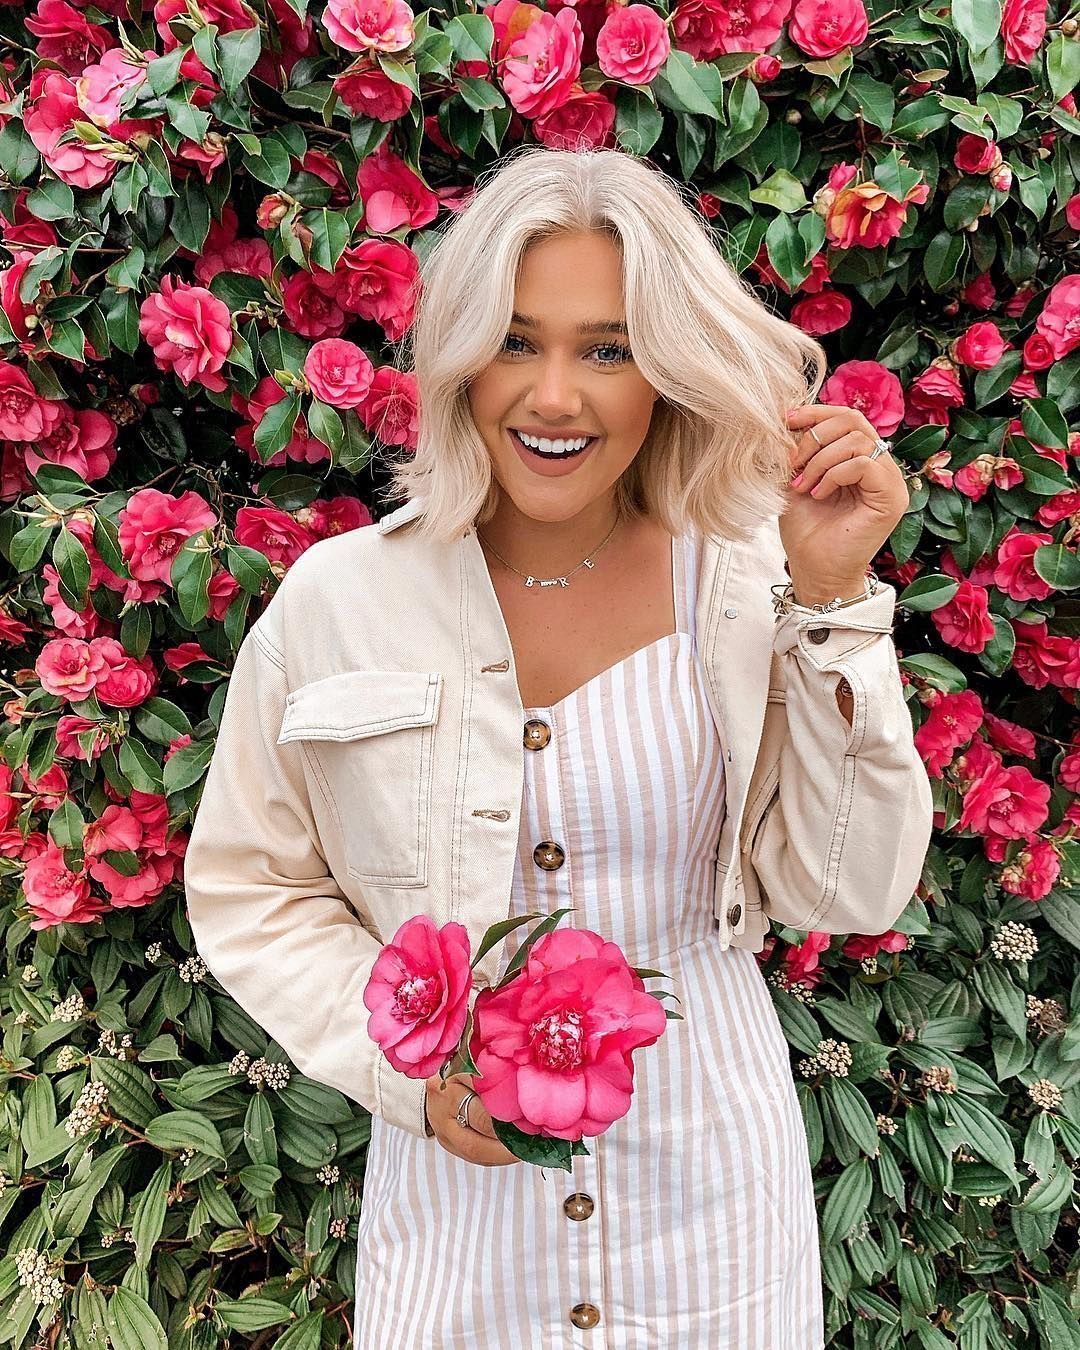 "BRE SHEPPARD on Instagram: ""Flower power  BRE SHEPPARD on Instagram: ""Flower power #bresheppard BRE SHEPPARD on Instagram: ""Flower power  BRE SHEPPARD on Instagram: ""Flower power #bresheppard"